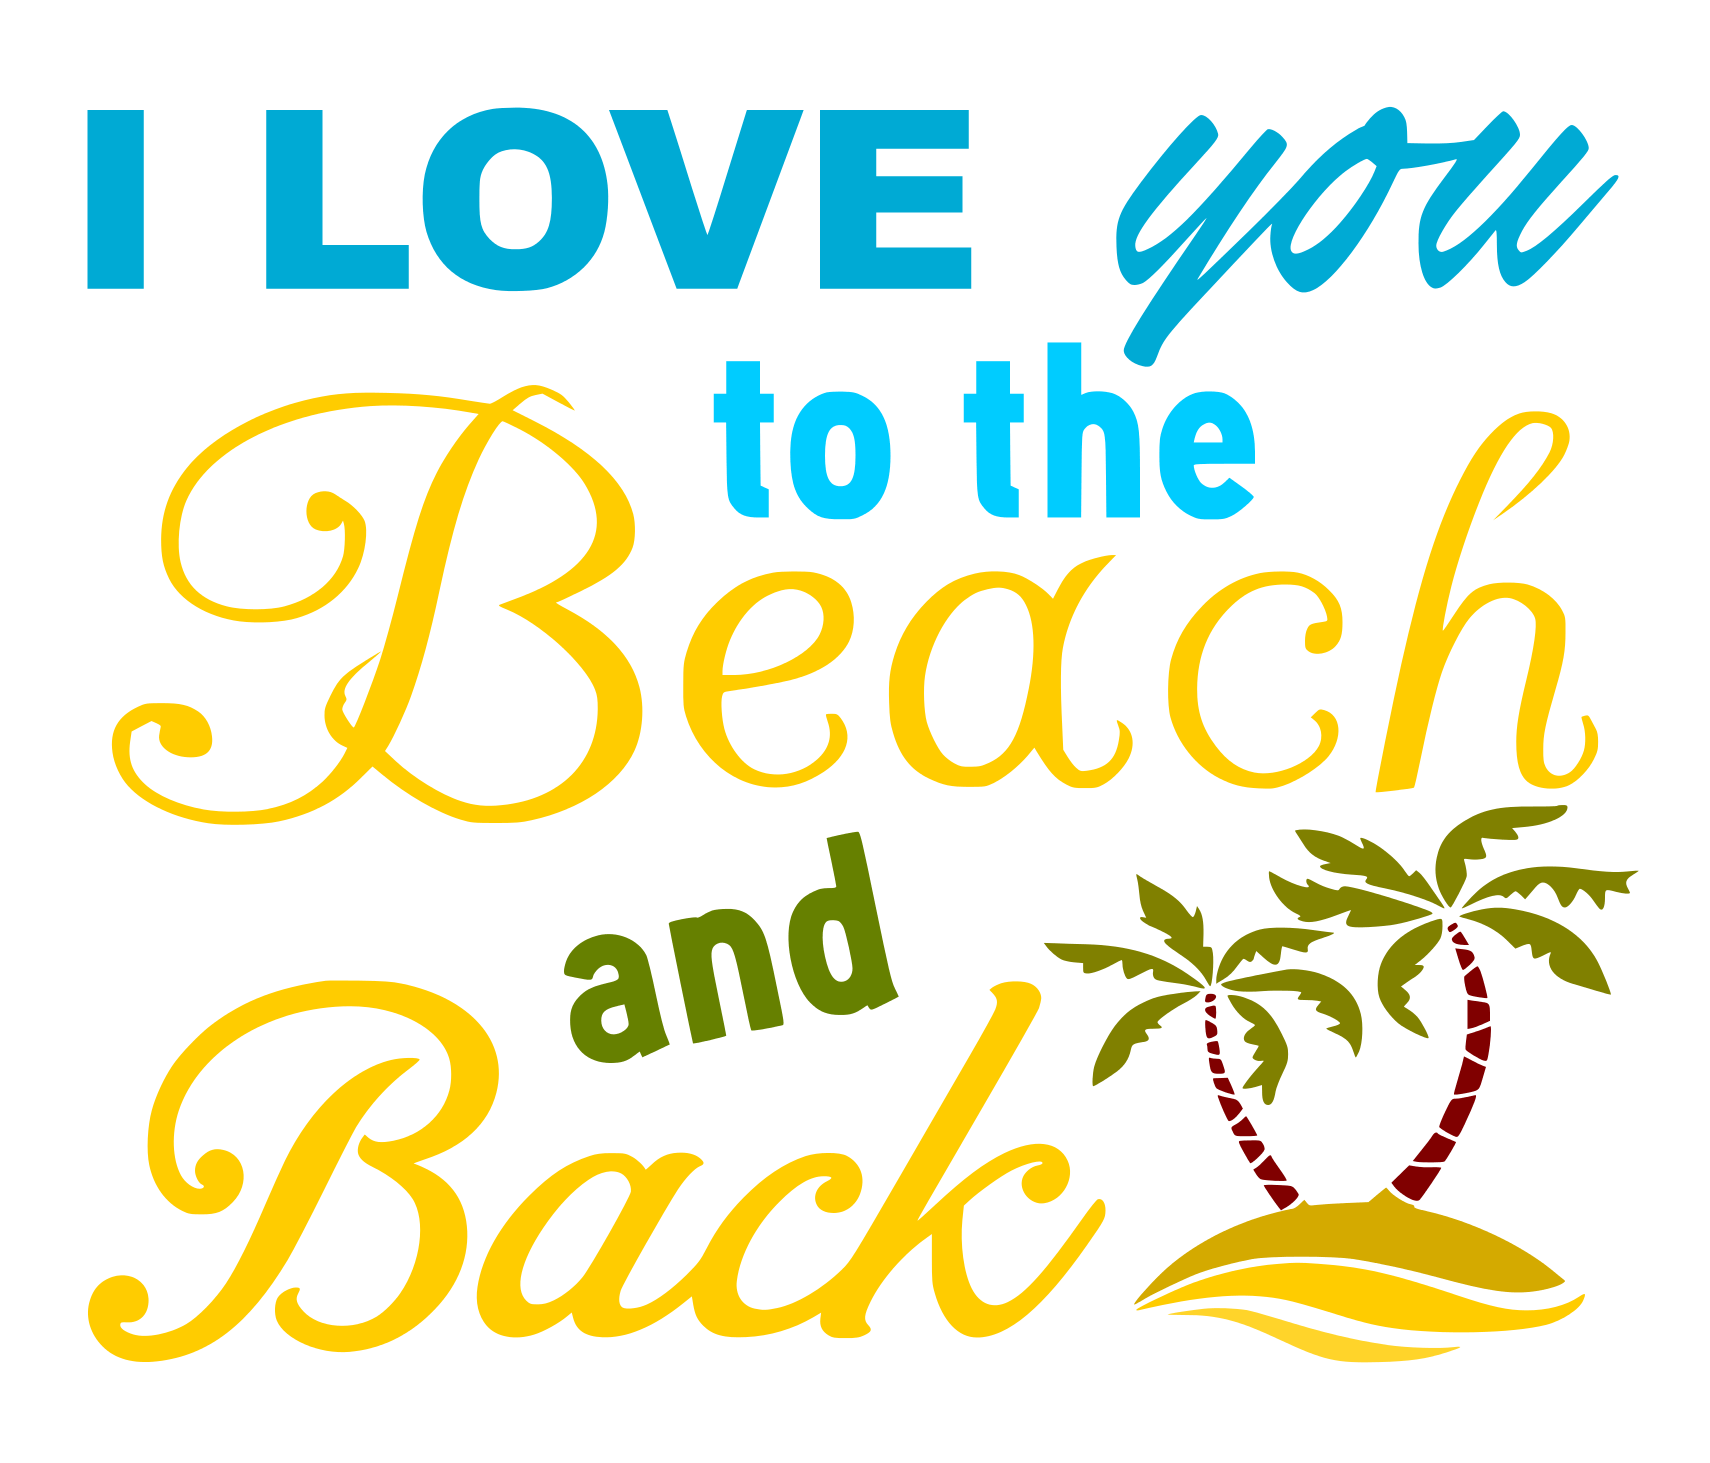 Free Beach and Back SVG Cutting File